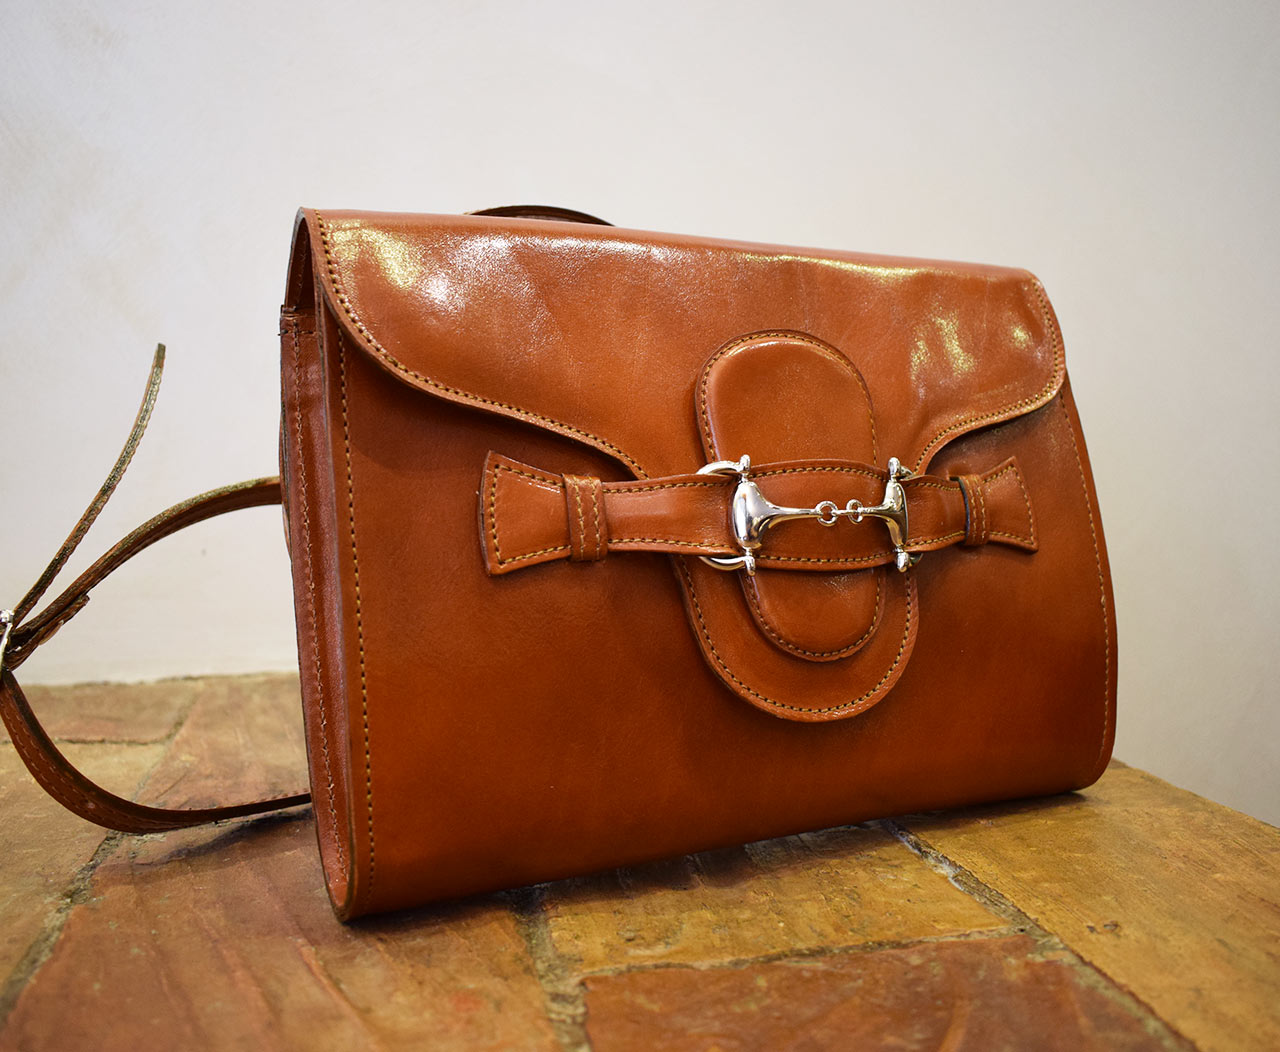 Leather Purse - Fama - Cognac